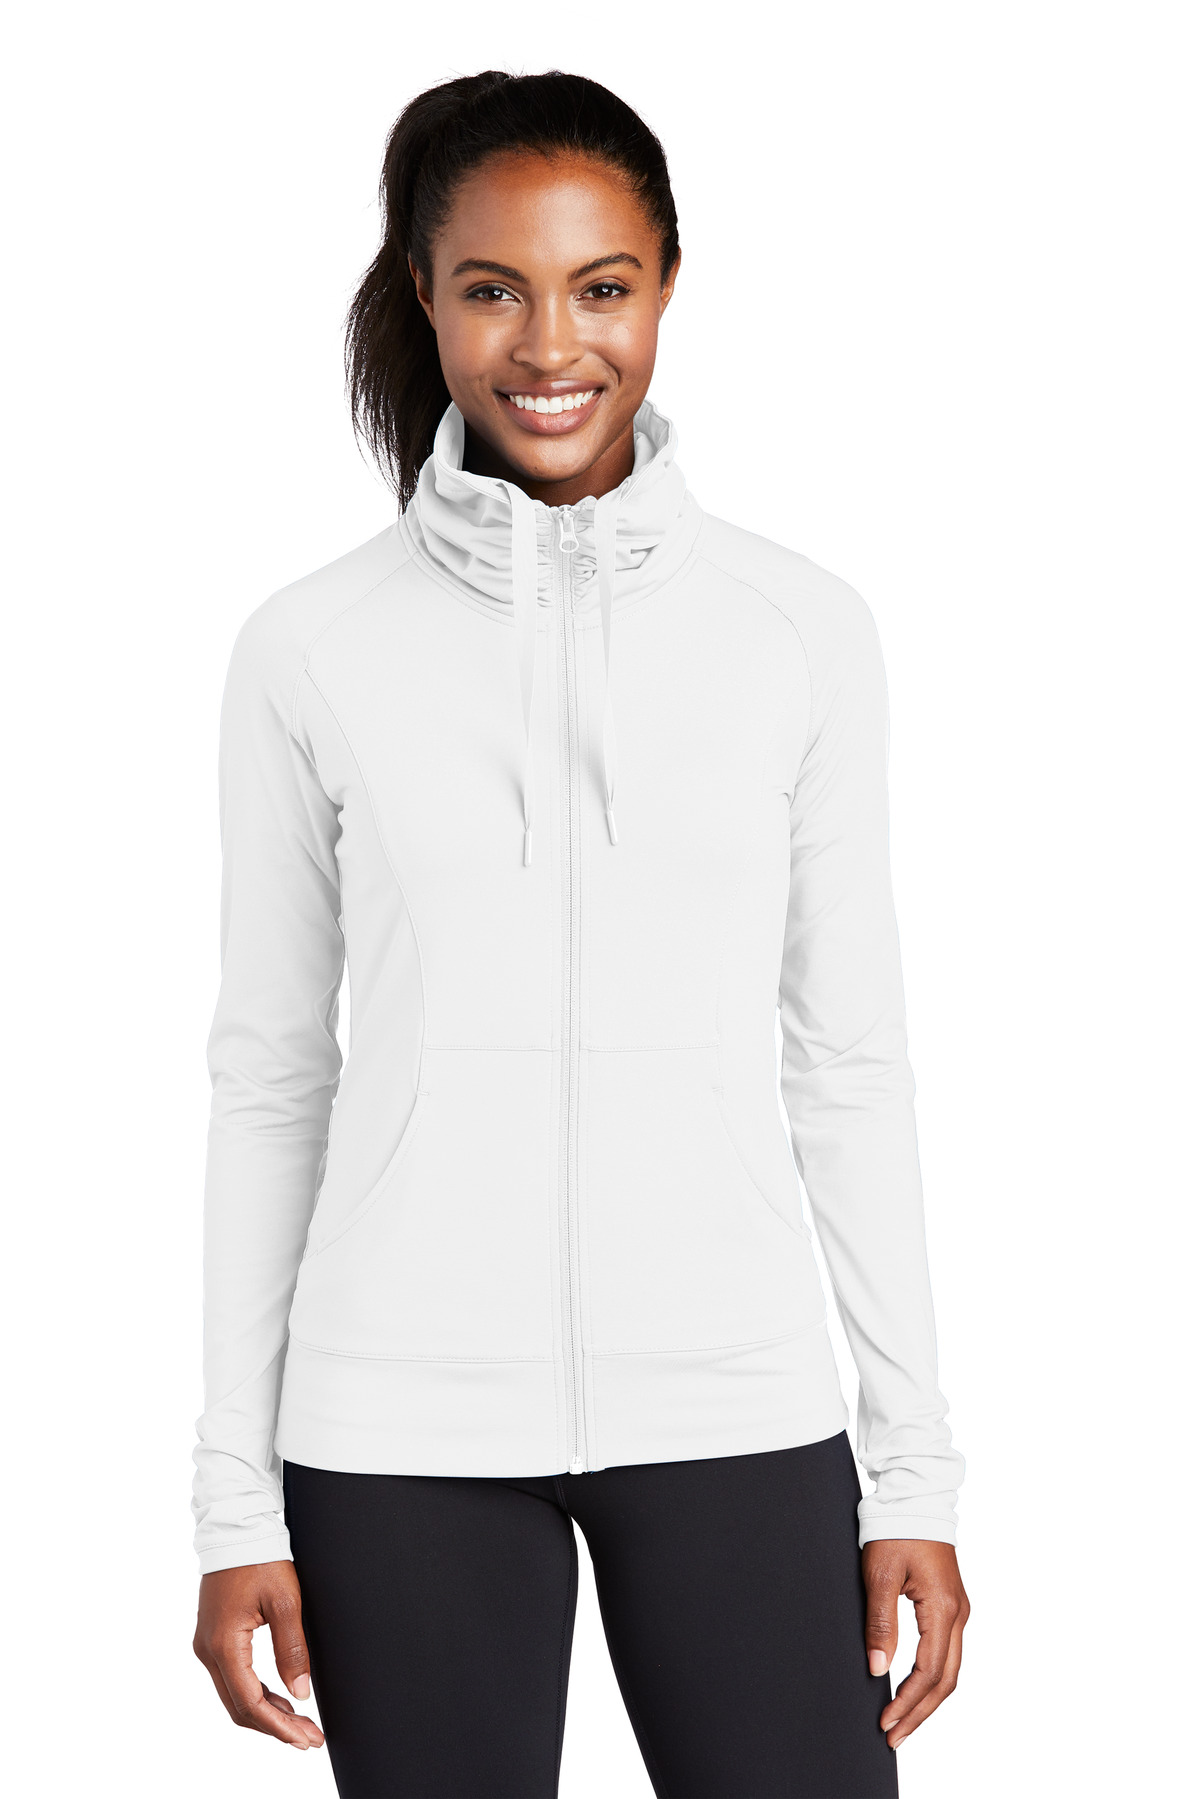 Sport-Tek ®  Ladies Sport-Wick ®  Stretch Full-Zip Jacket. LST852 - White